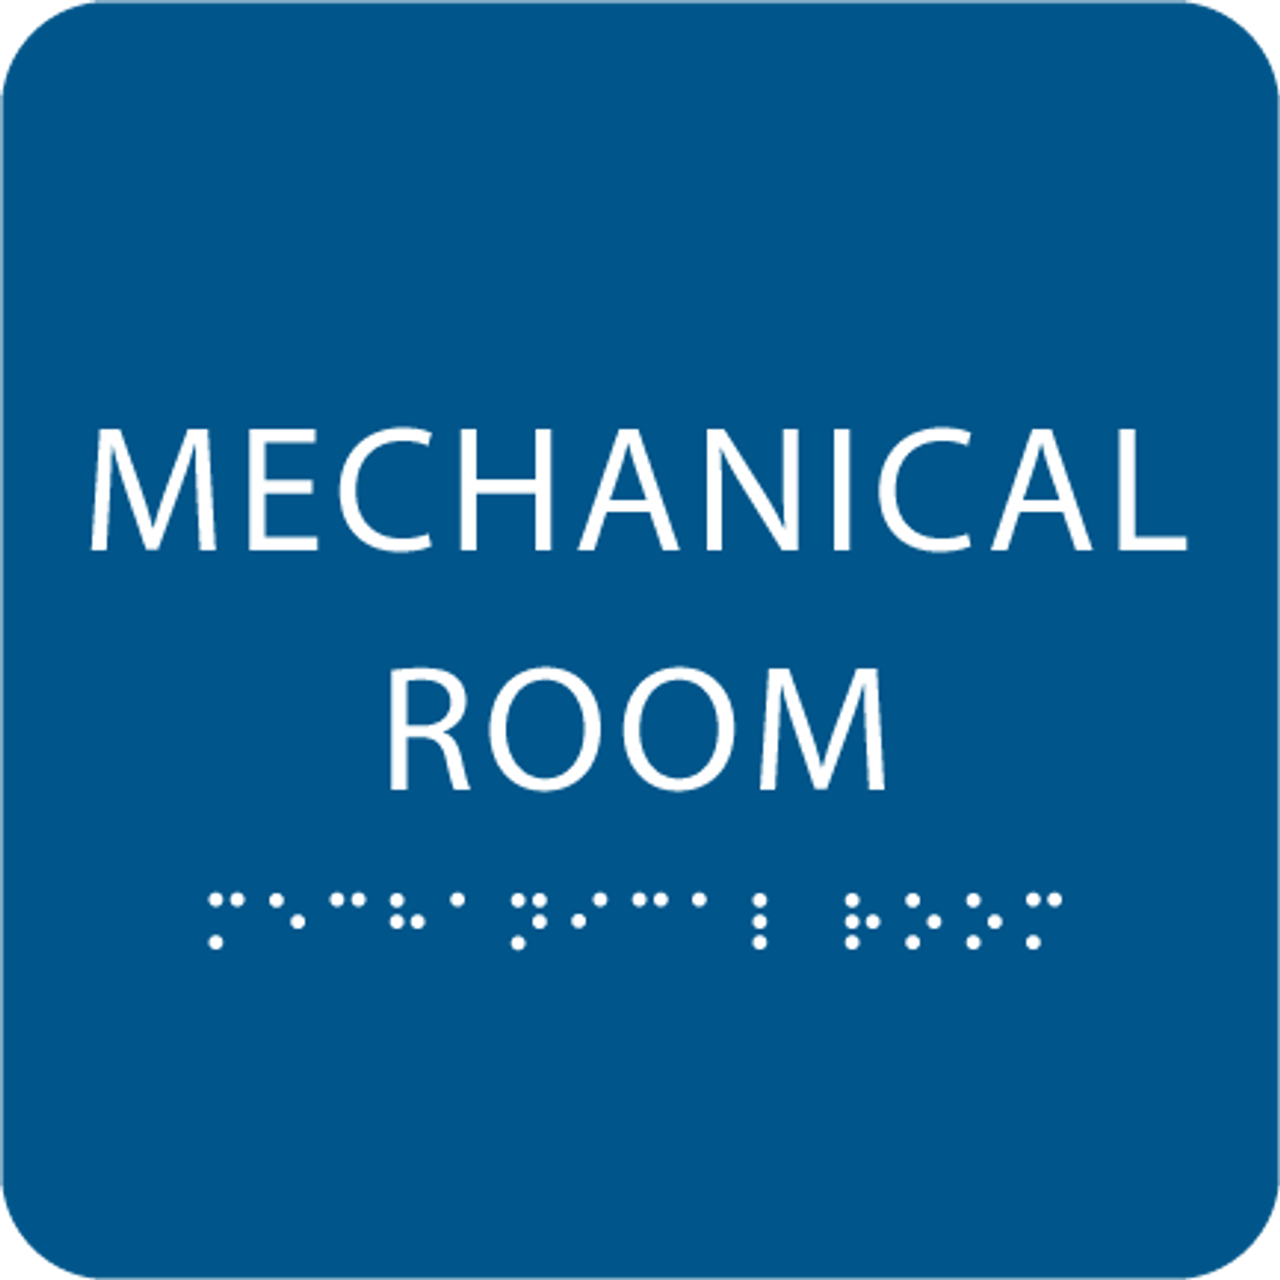 Royal Tactile Mechanical Room Sign